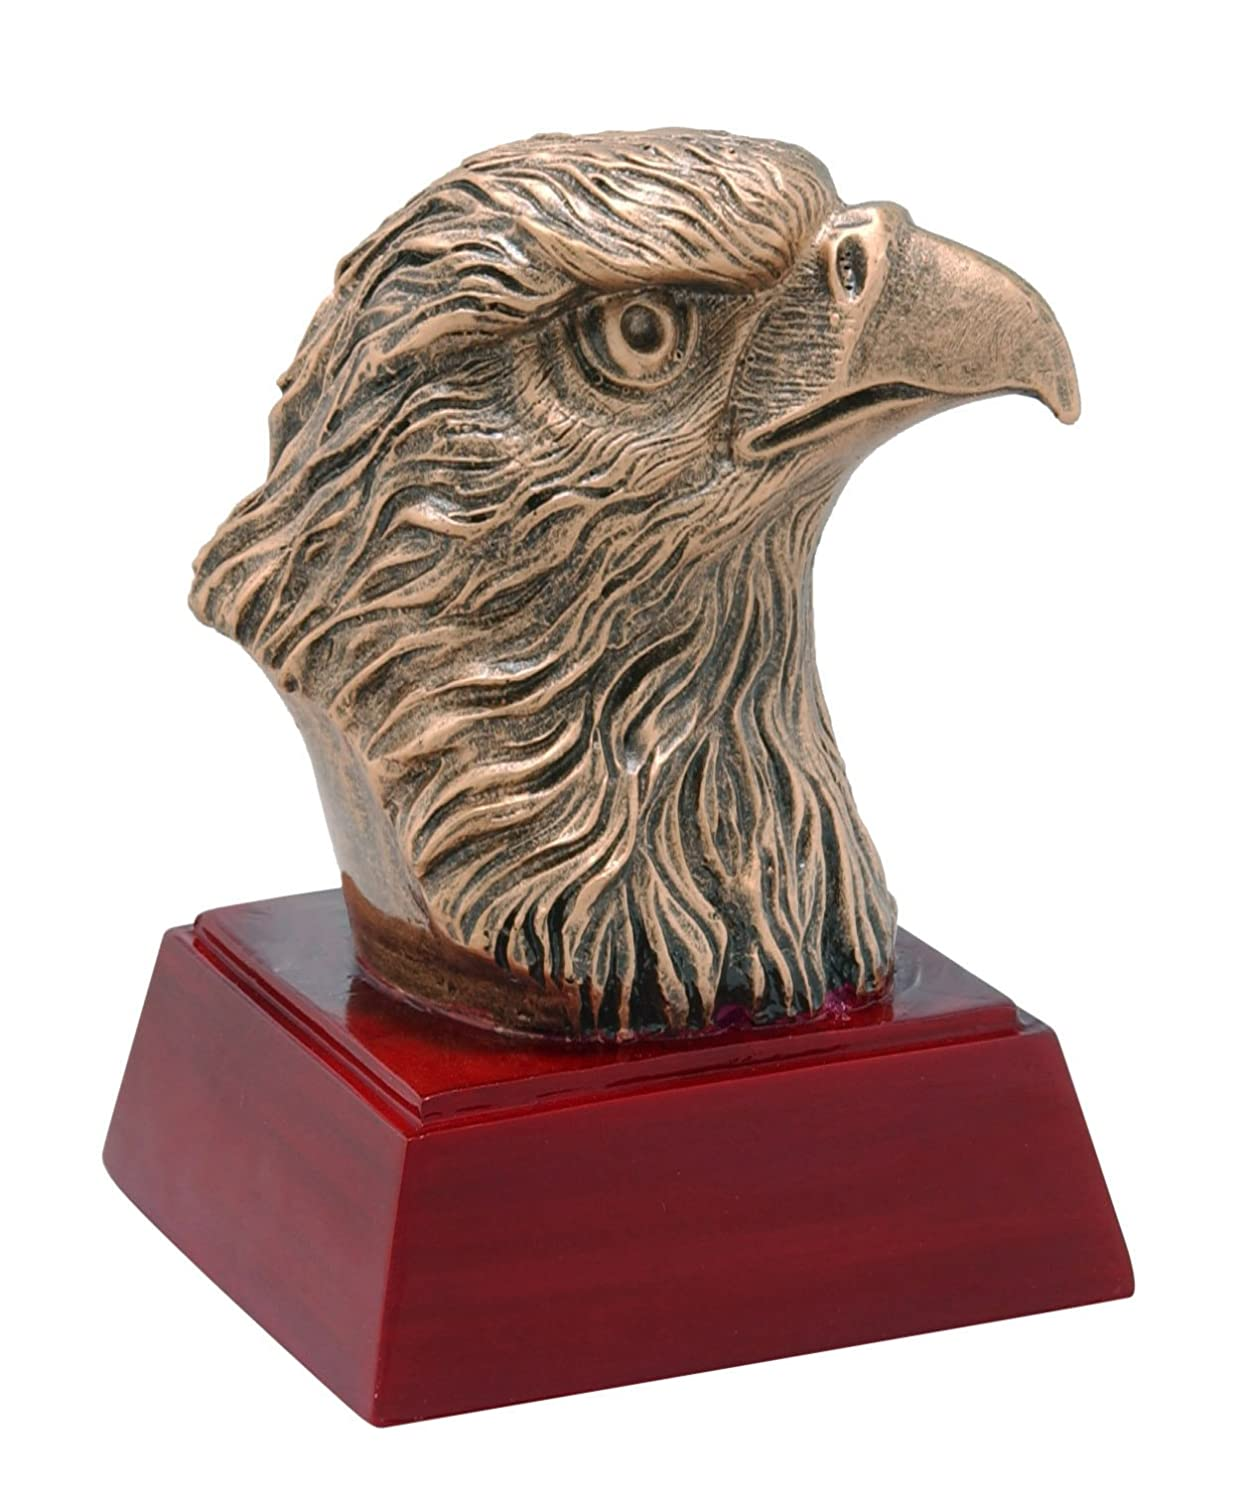 EagleマスコットSculptured Trophy – カスタマイズNow – Personalized Engraved Plate Included & Attached to award – Perfect認識賞トロフィー B074F3QRG7